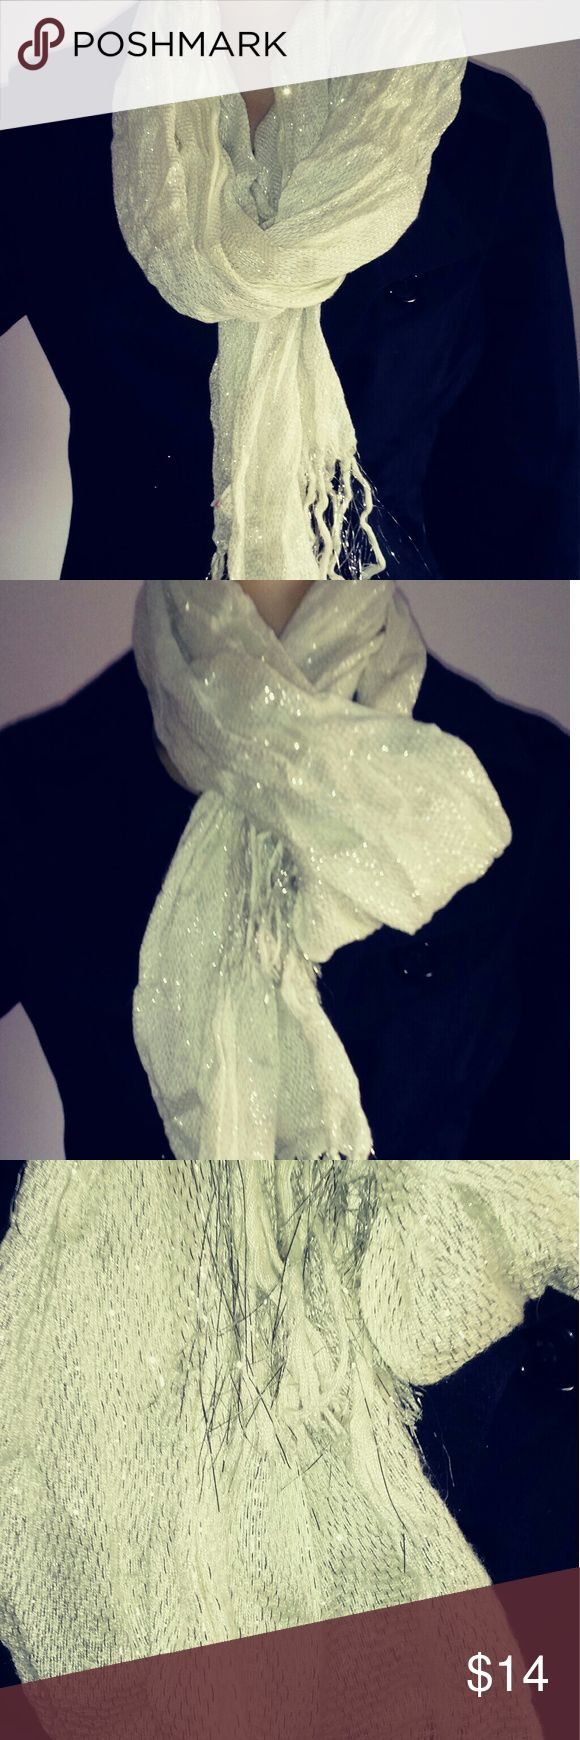 Sparkle Scarf All that glitters isn't gold.... Linen scarf with silver accents all throughout Lightweight but useful and super cute! Good for dressing up the cold weather.. Accessories Scarves & Wraps